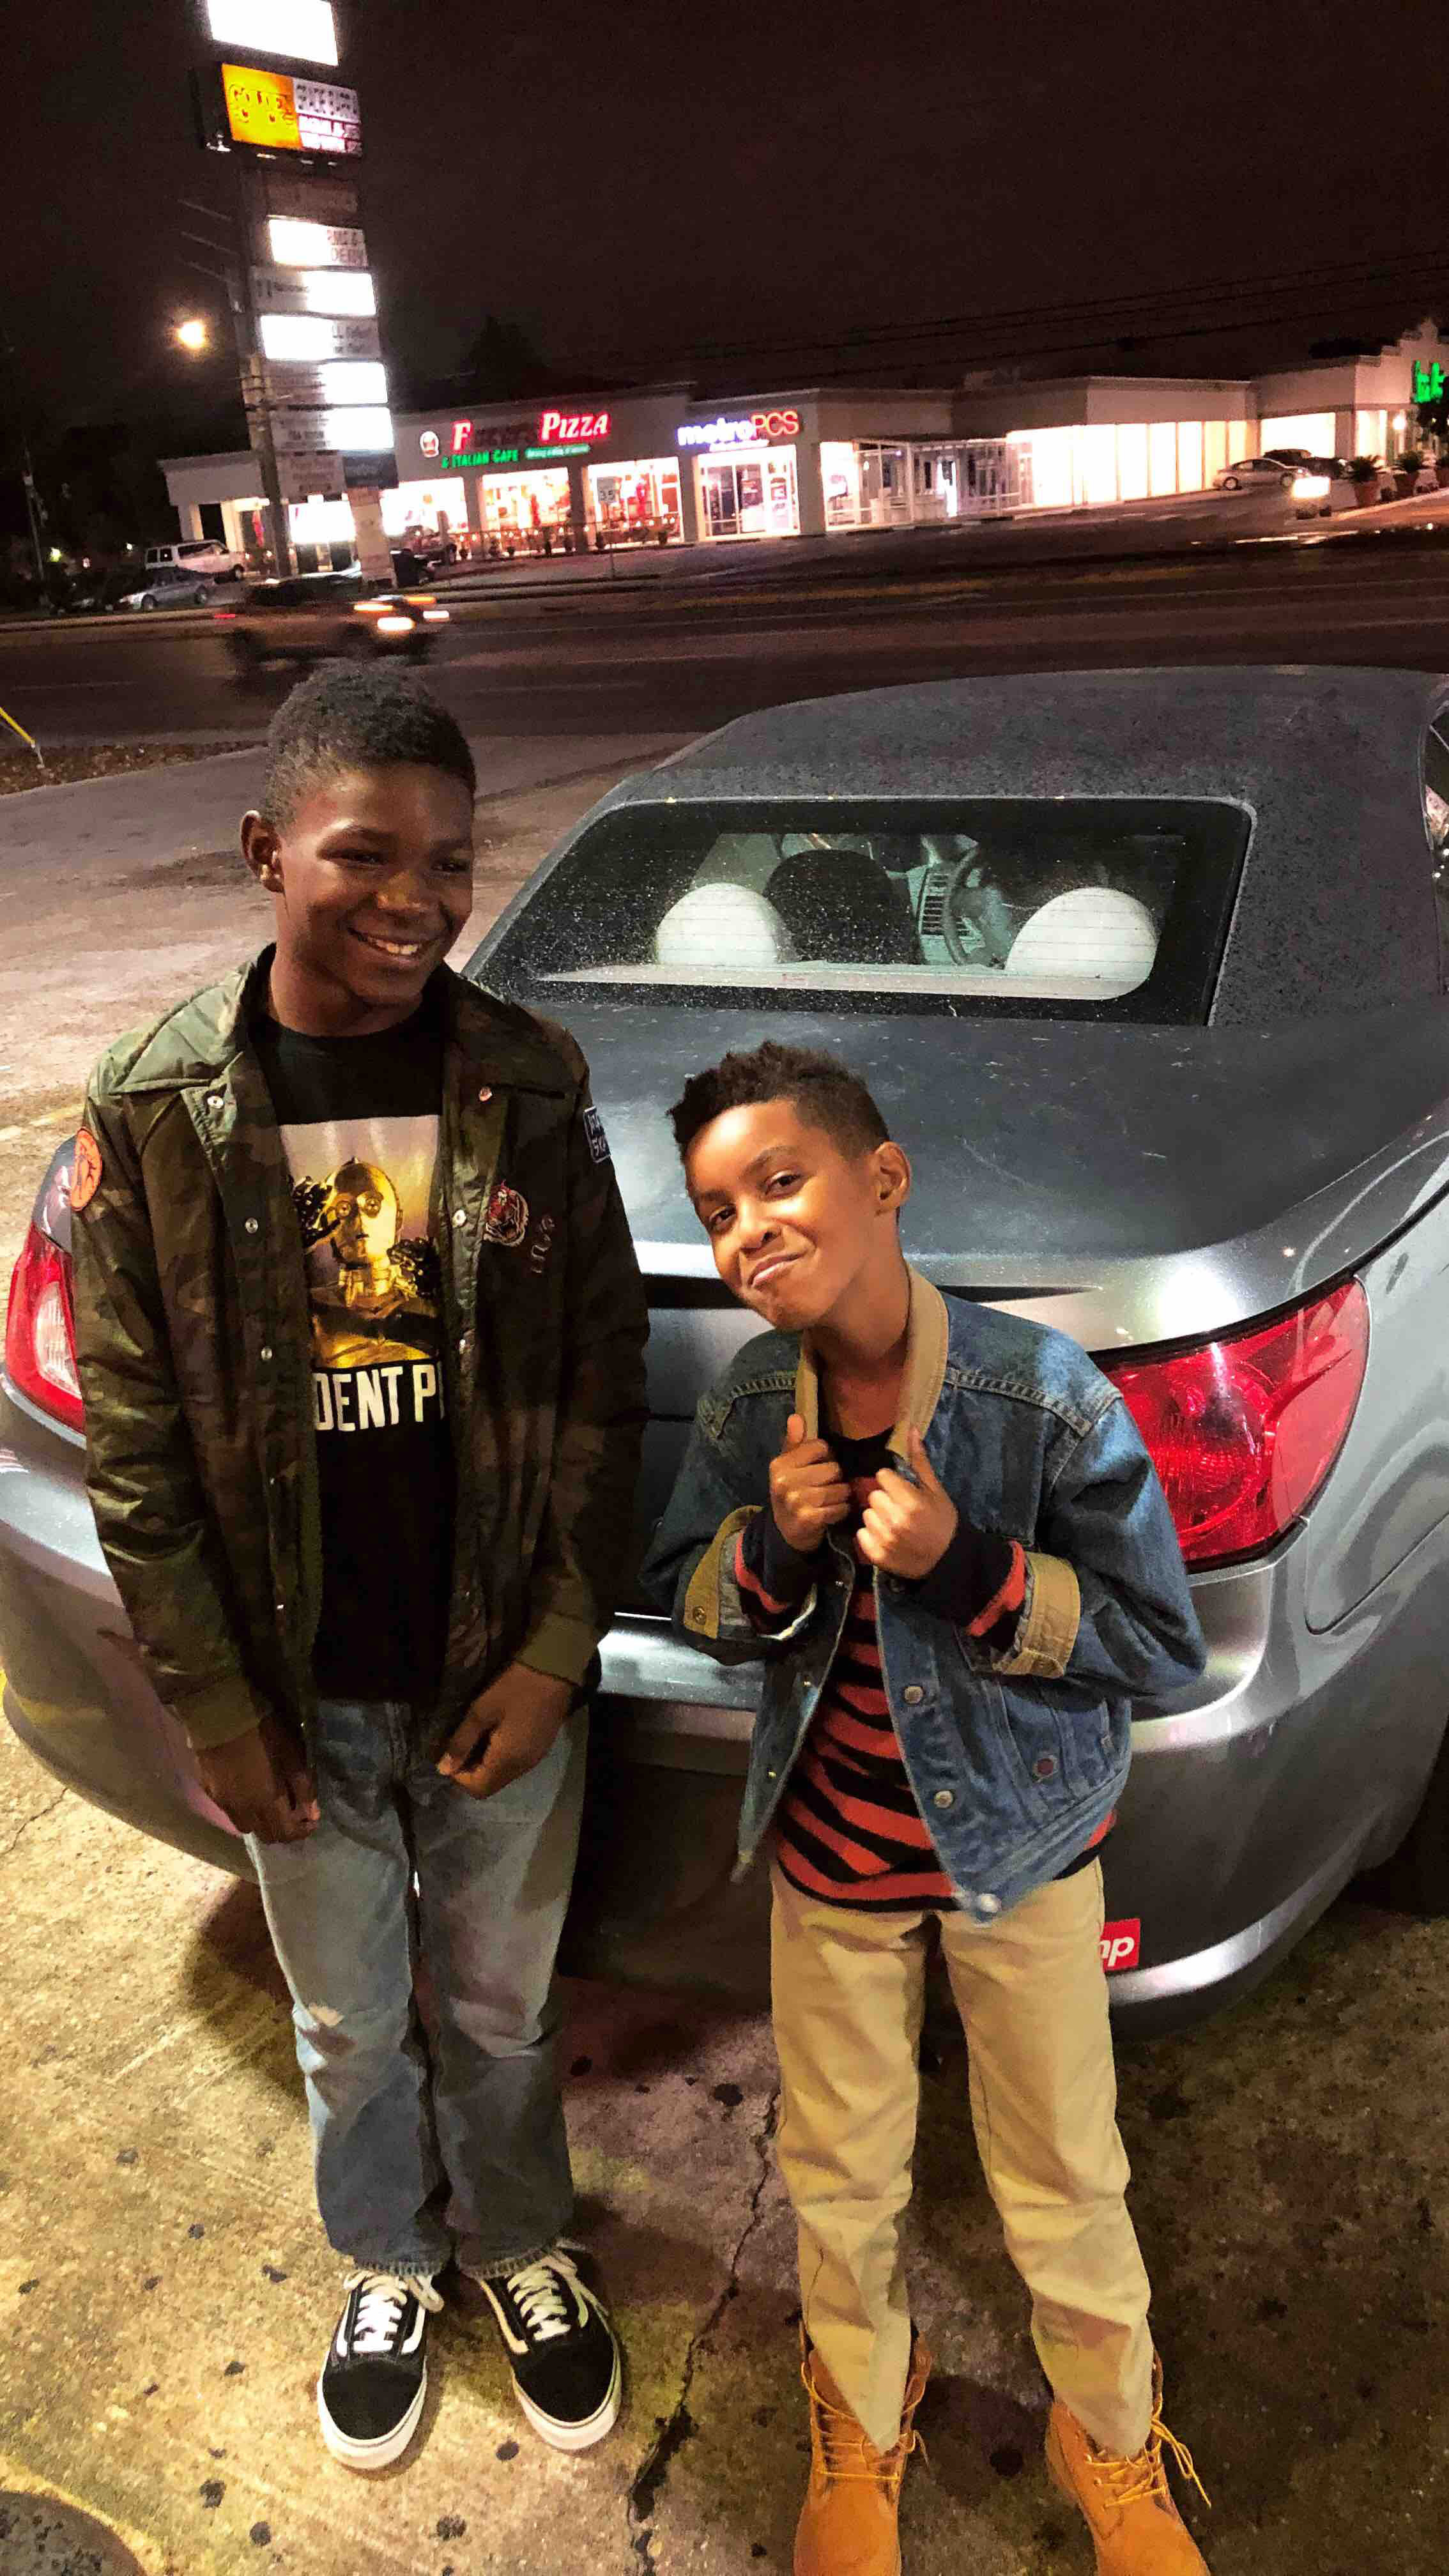 Dad Turns Anger at Young Son's School Bully into Kindness When He Learns Boy Is Homeless